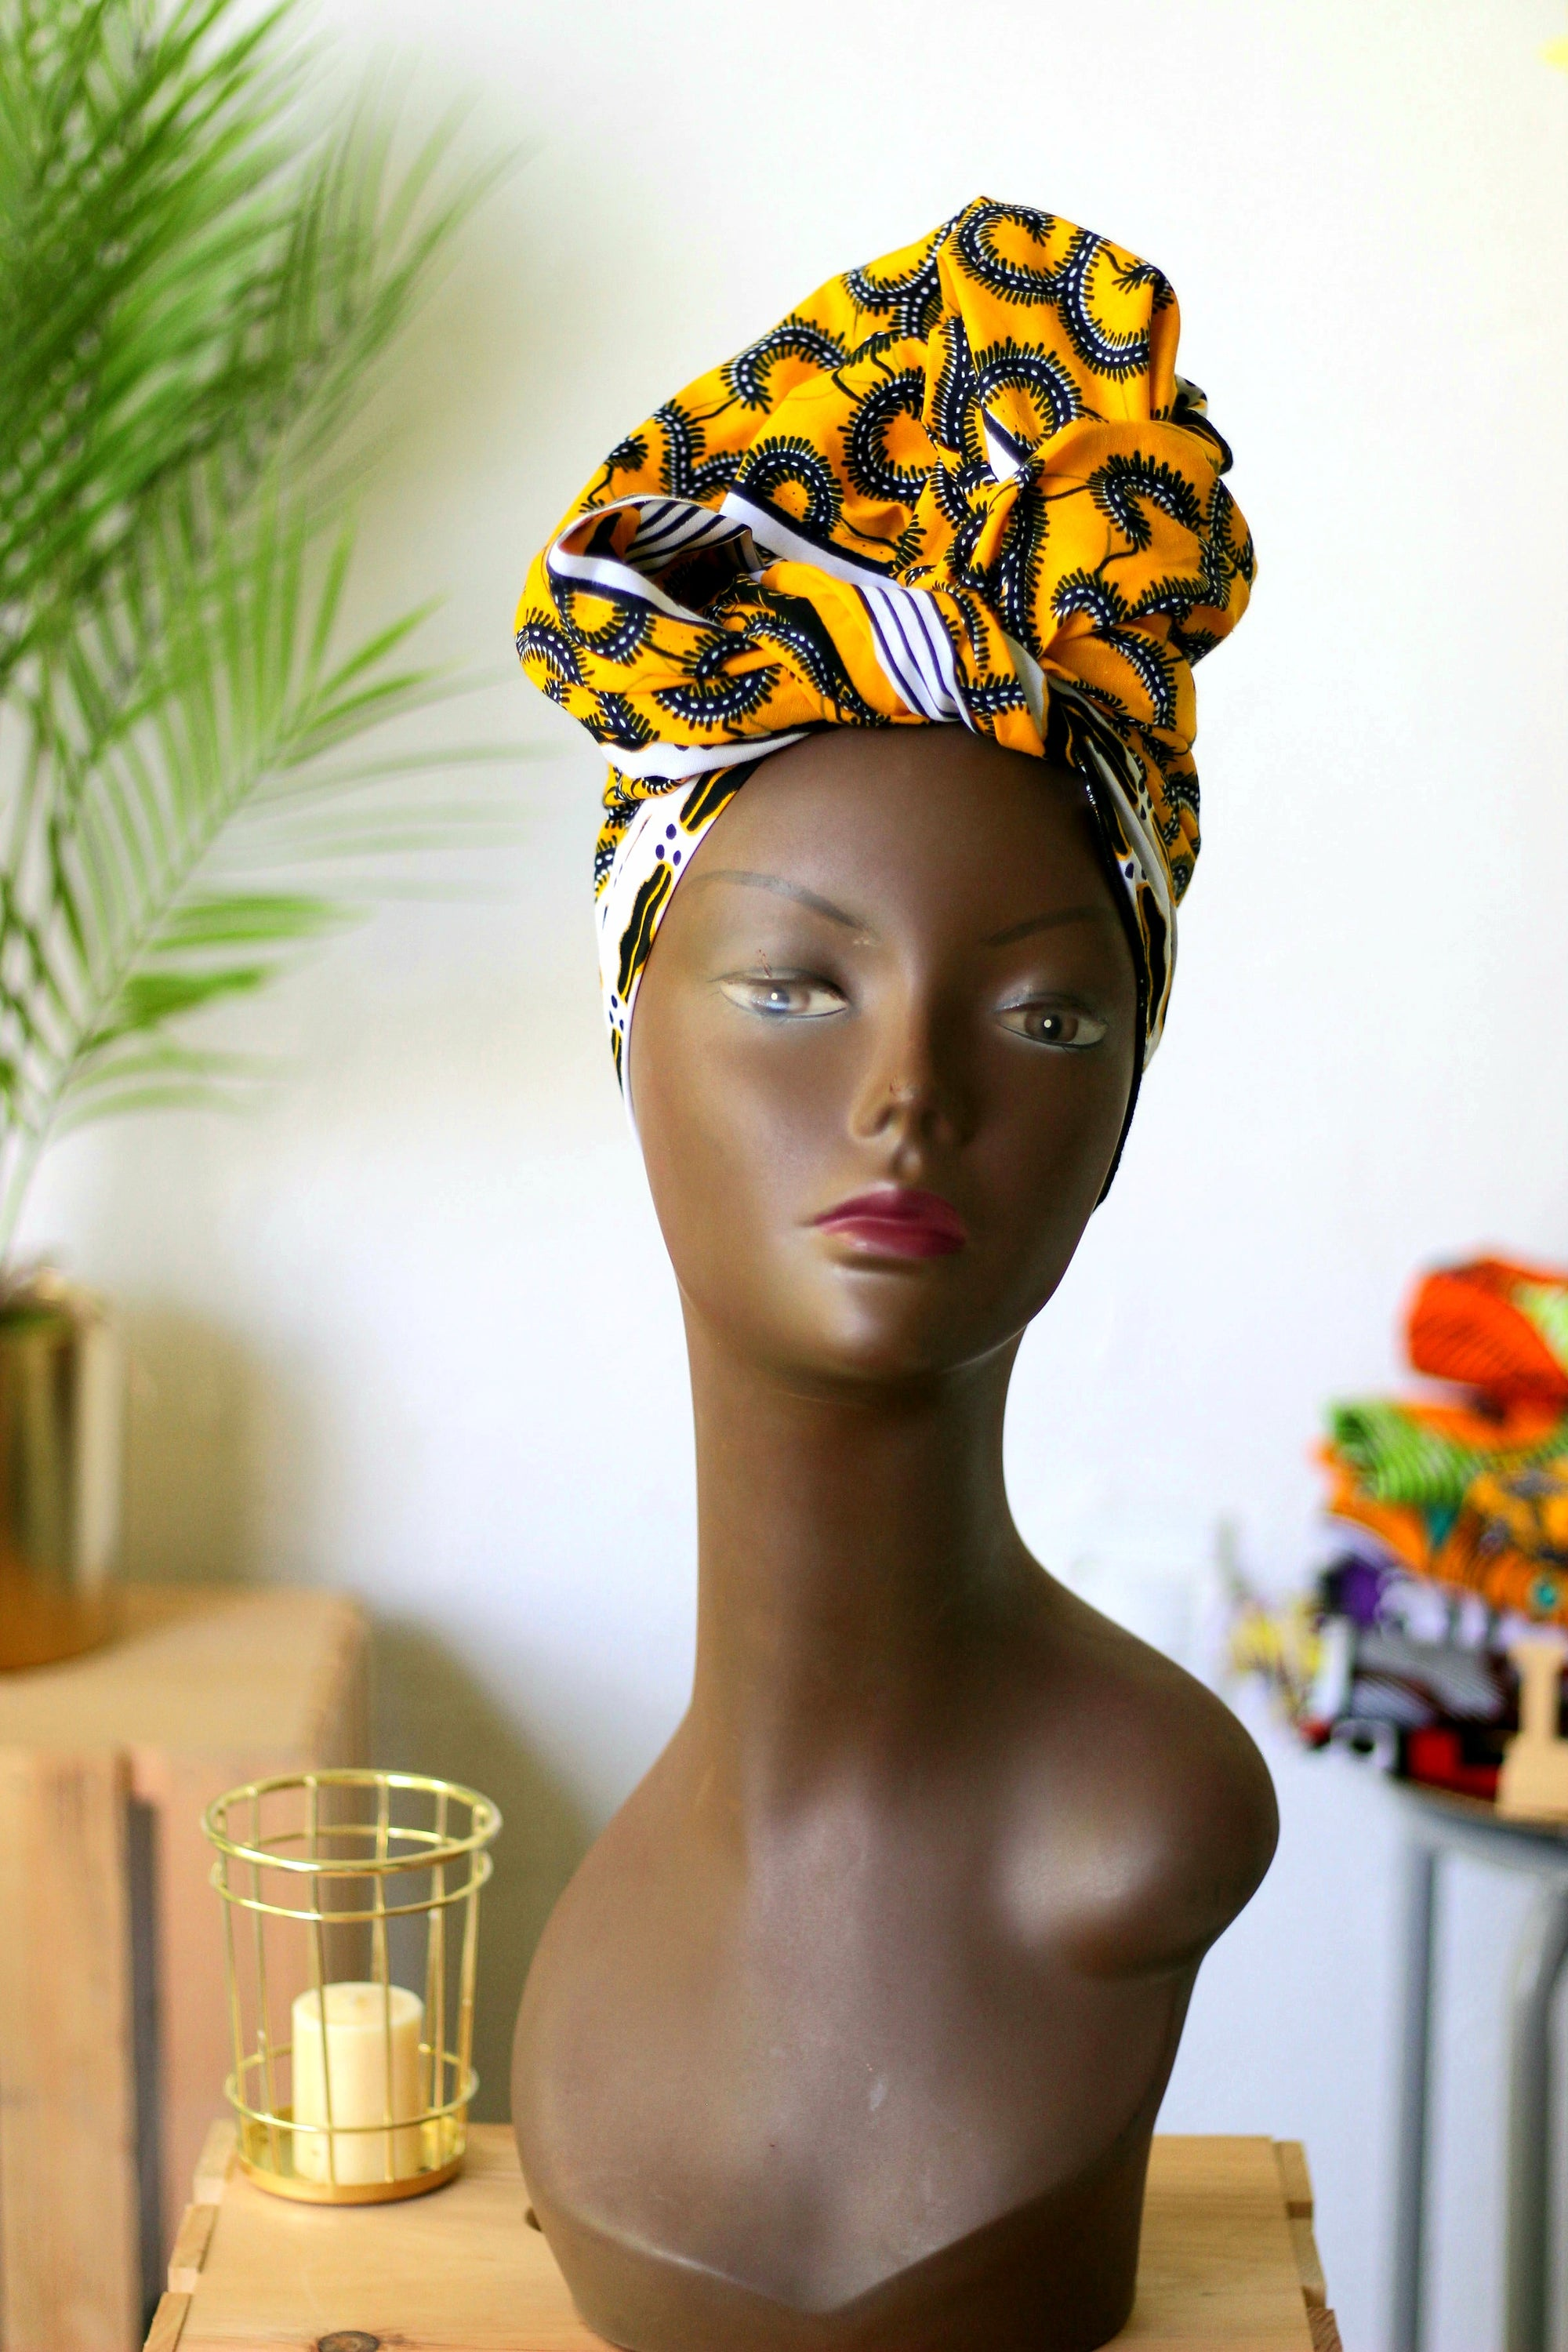 African Print Headwrap (Jumbo) - Yellow/White/Black  Floral Print